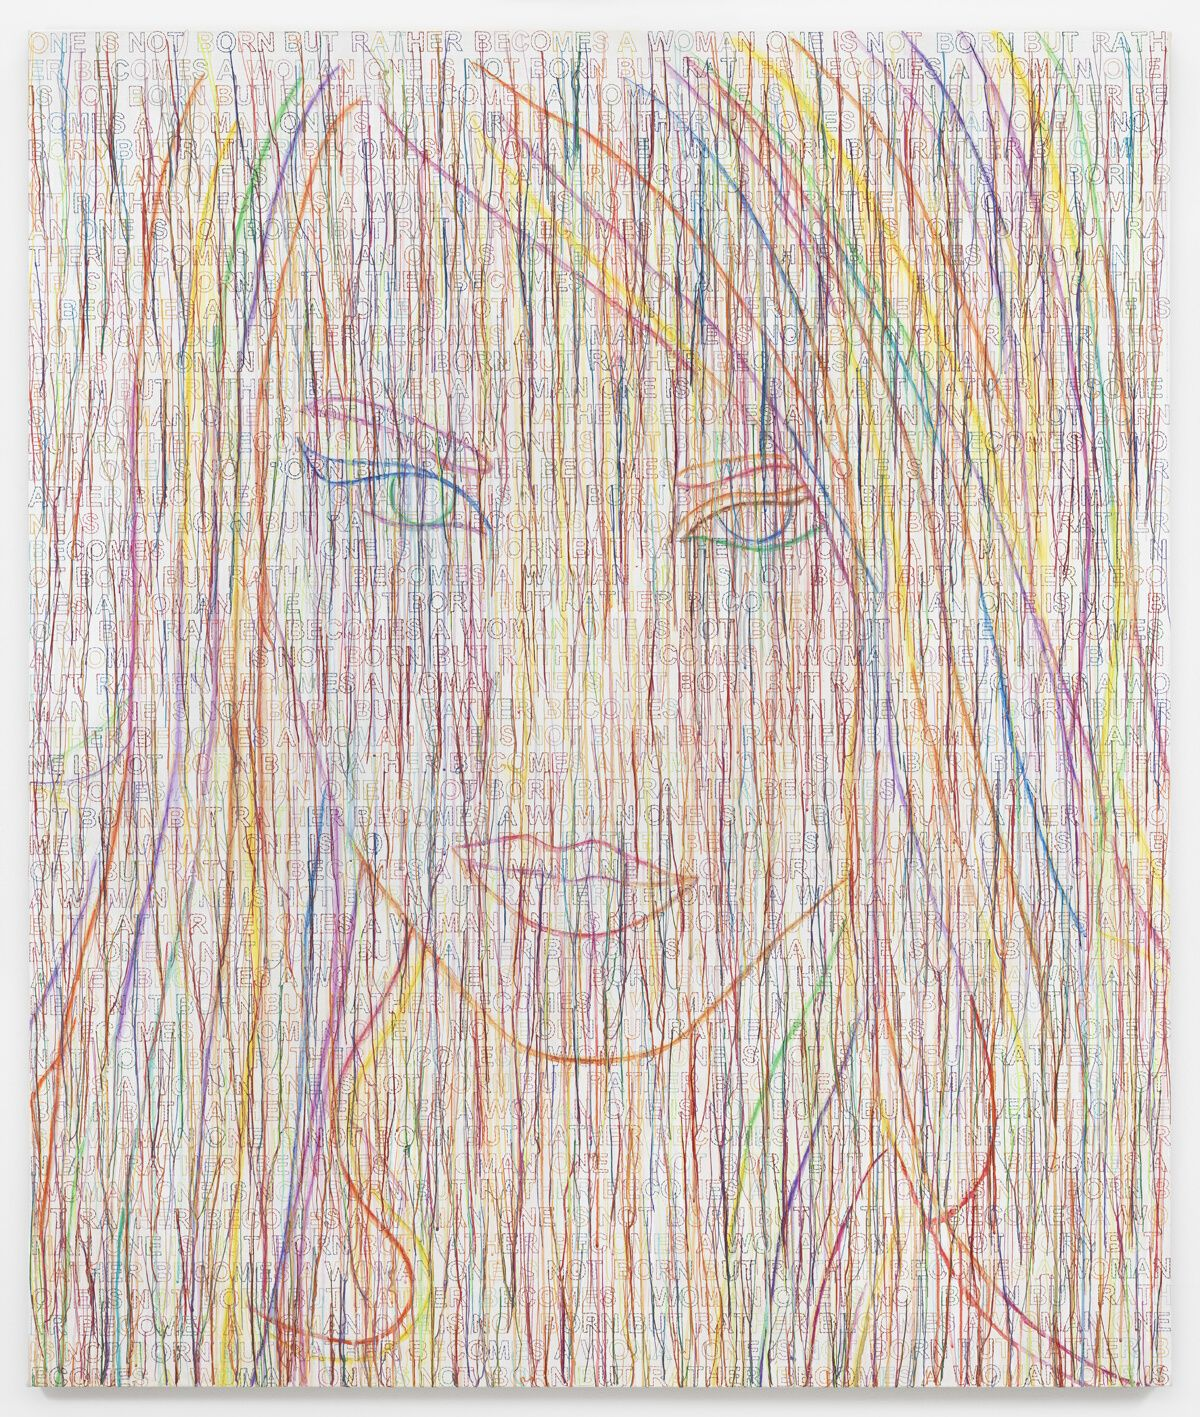 Ghada Amer, The Rainbow Girl, 2014, Acrylic, embroidery and gel medium on canvas, 70 x 59 in.